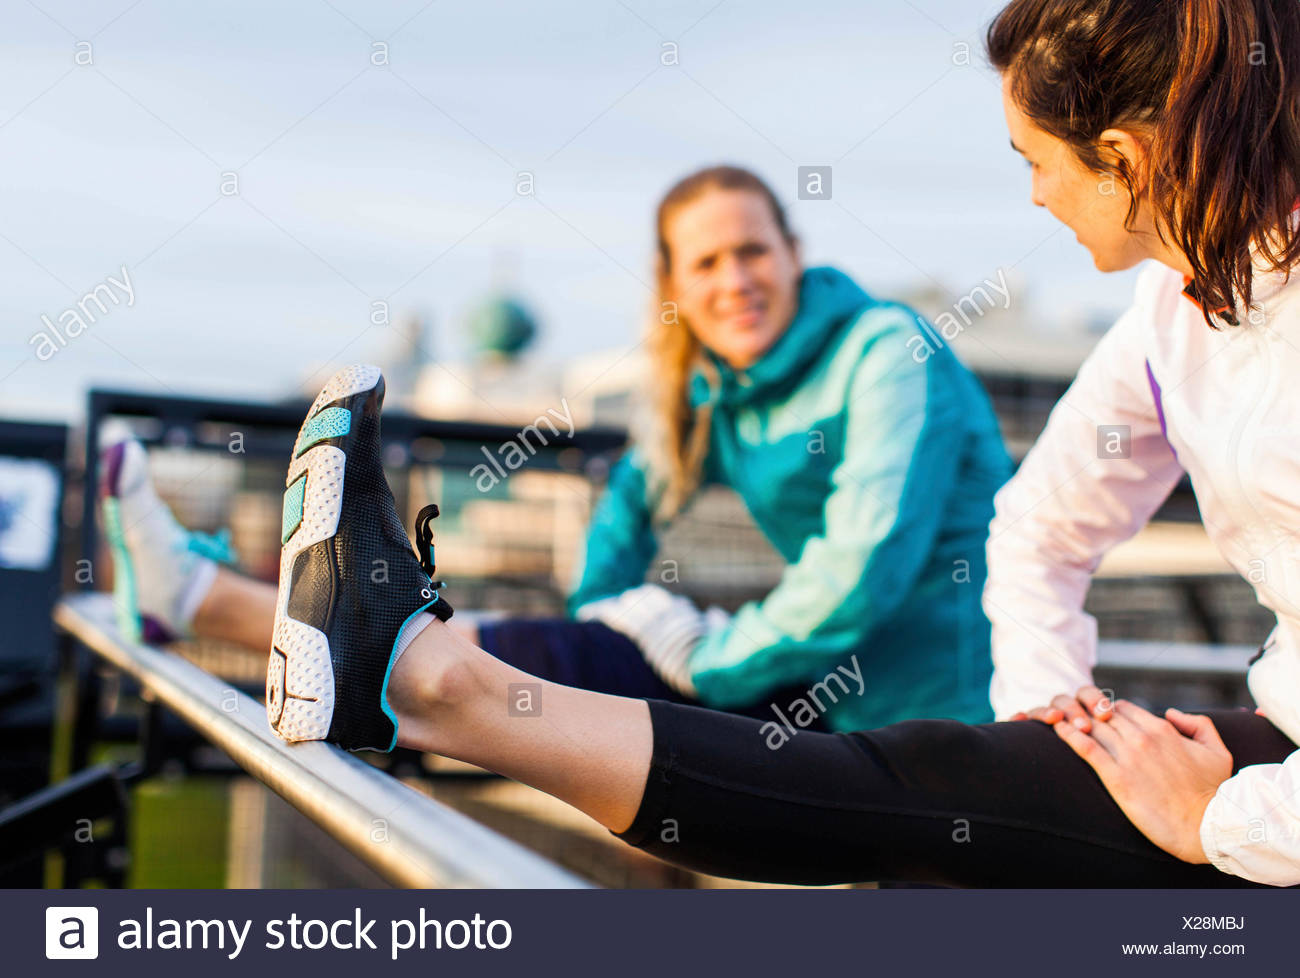 Two female runners stretch their hamstrings after a job near the Puget Sound in Seattle, WA. - Stock Image